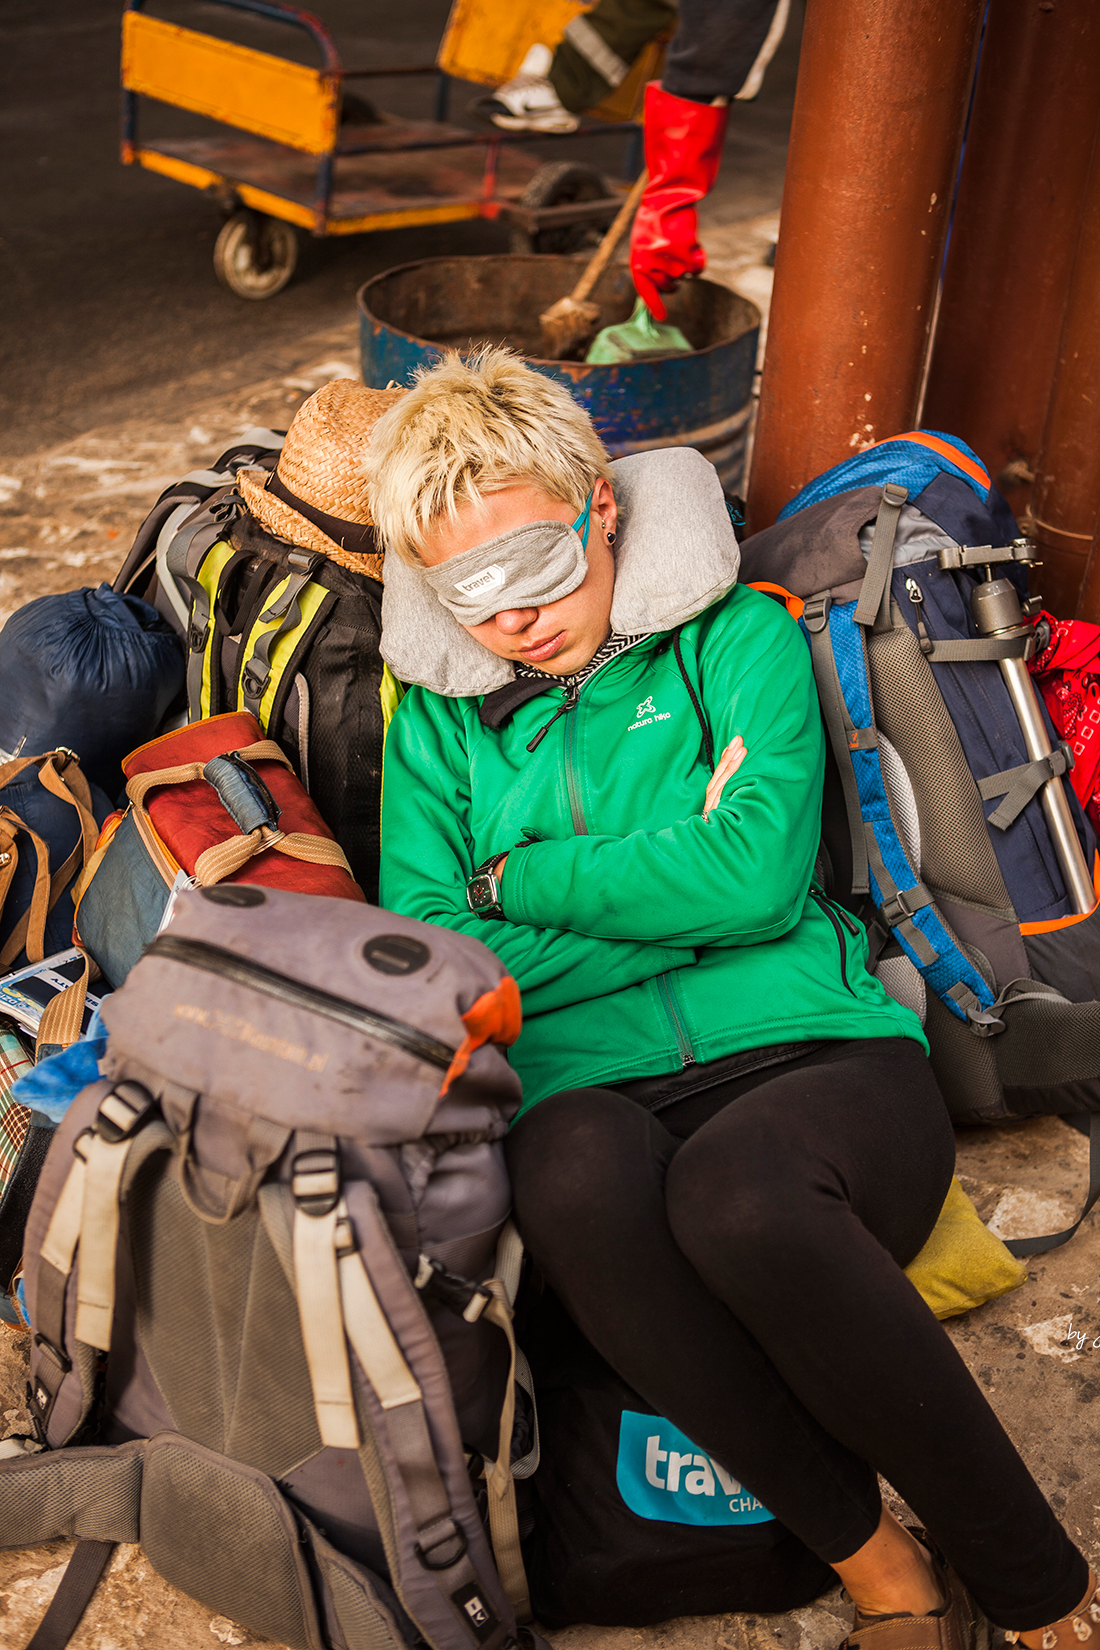 Martyna Skura. lifein20kg. African Road Trip, HollyCow